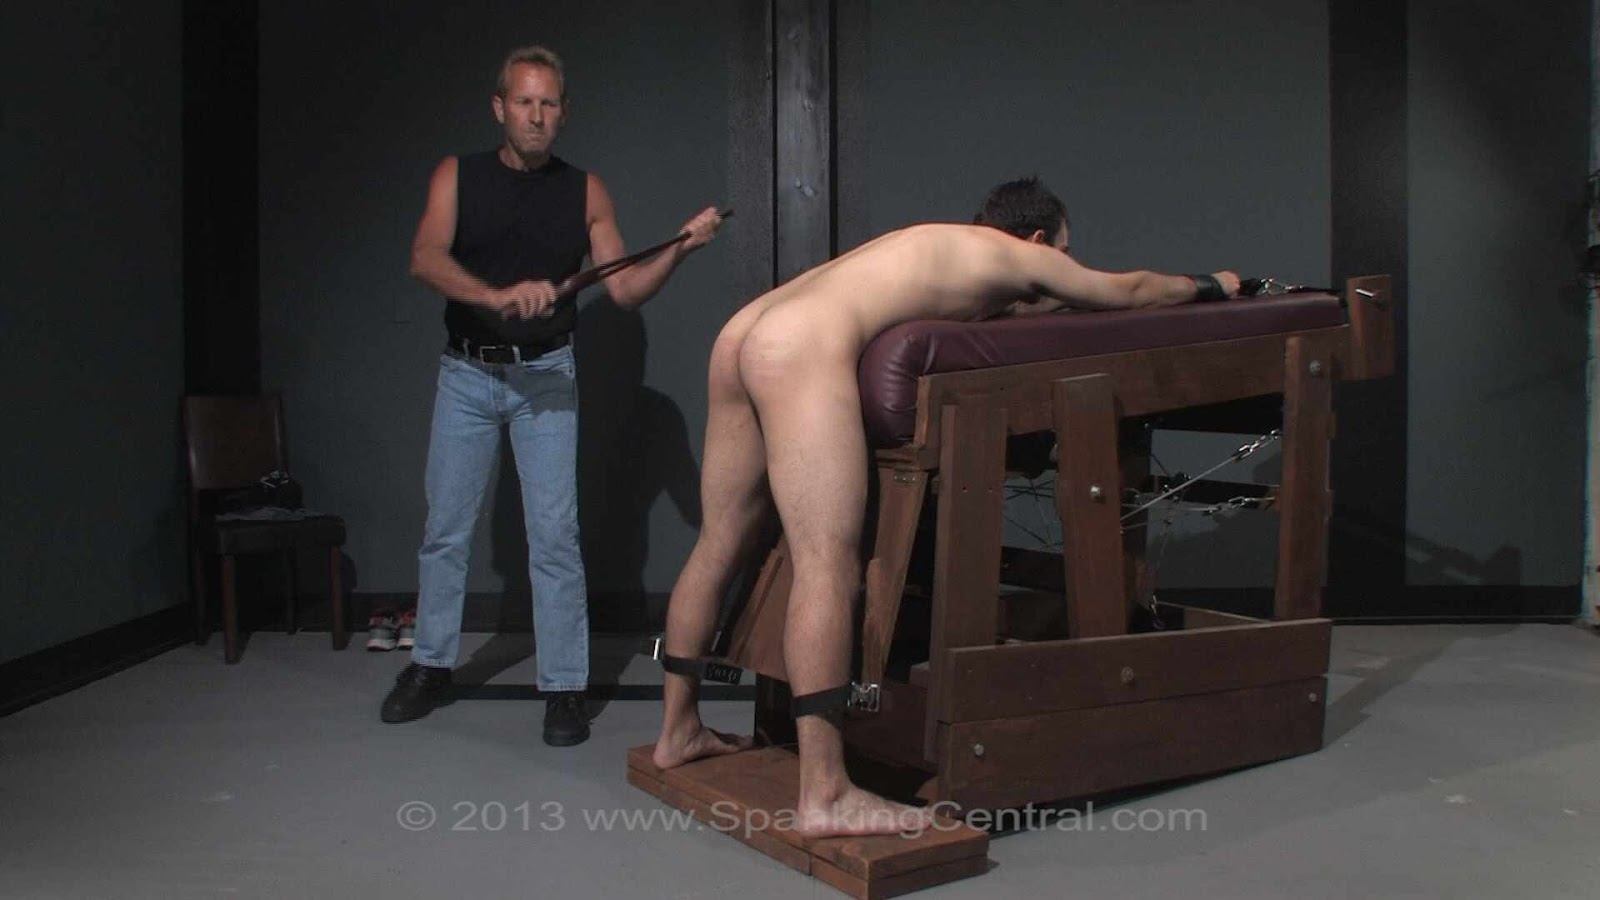 Pity, male spank central